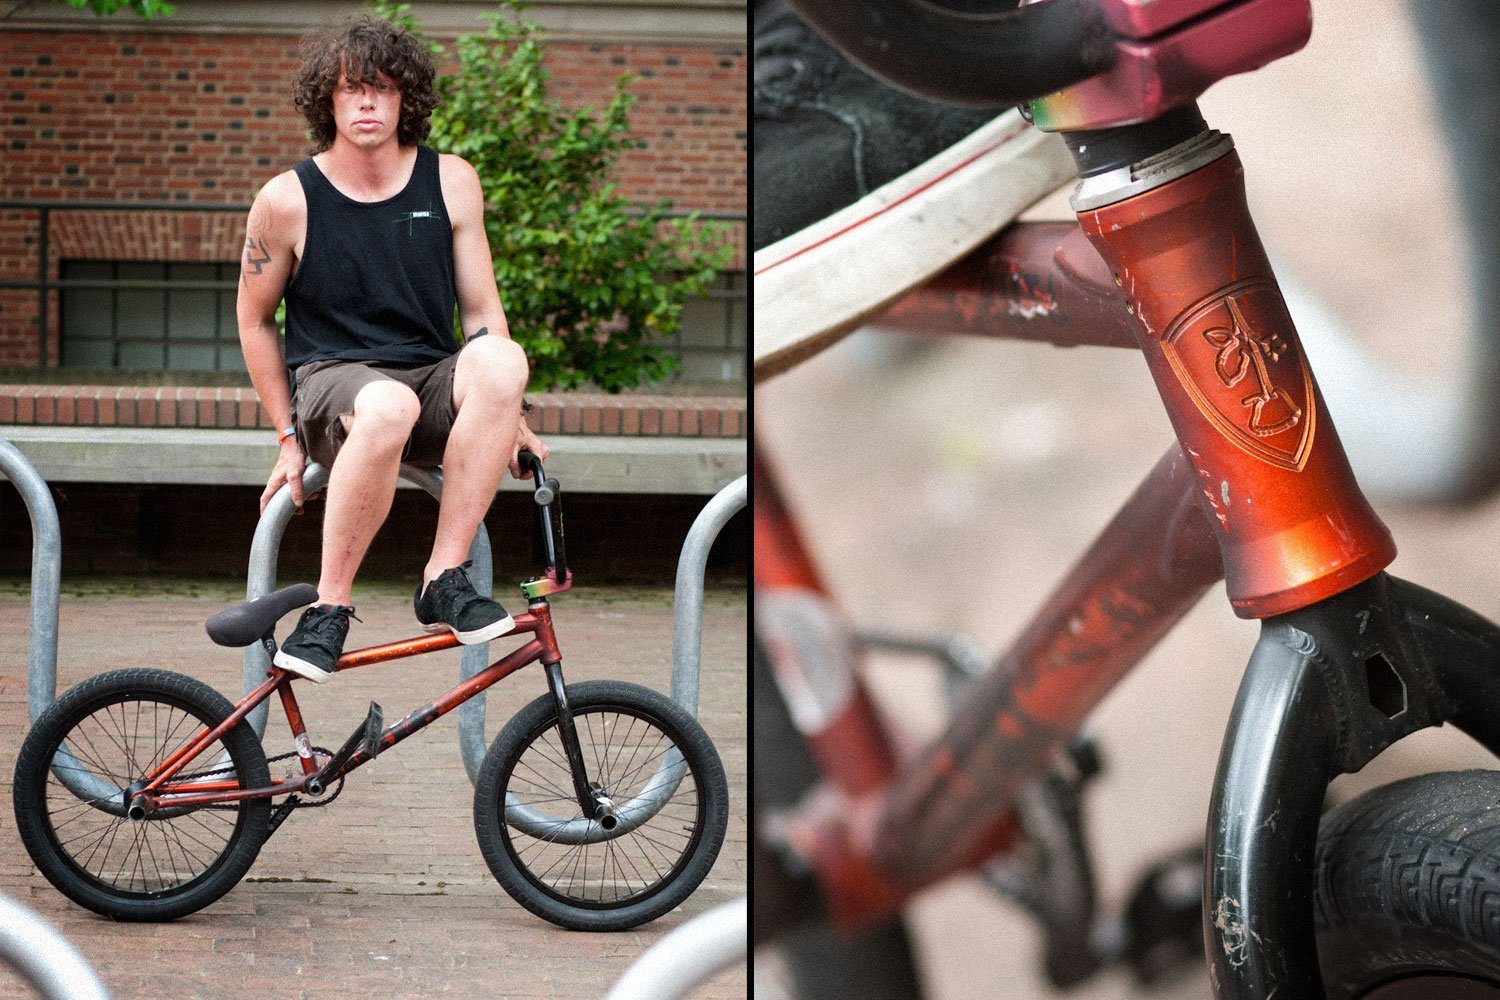 Scott Ditchburn Bike Check The Shadow Conspiracy